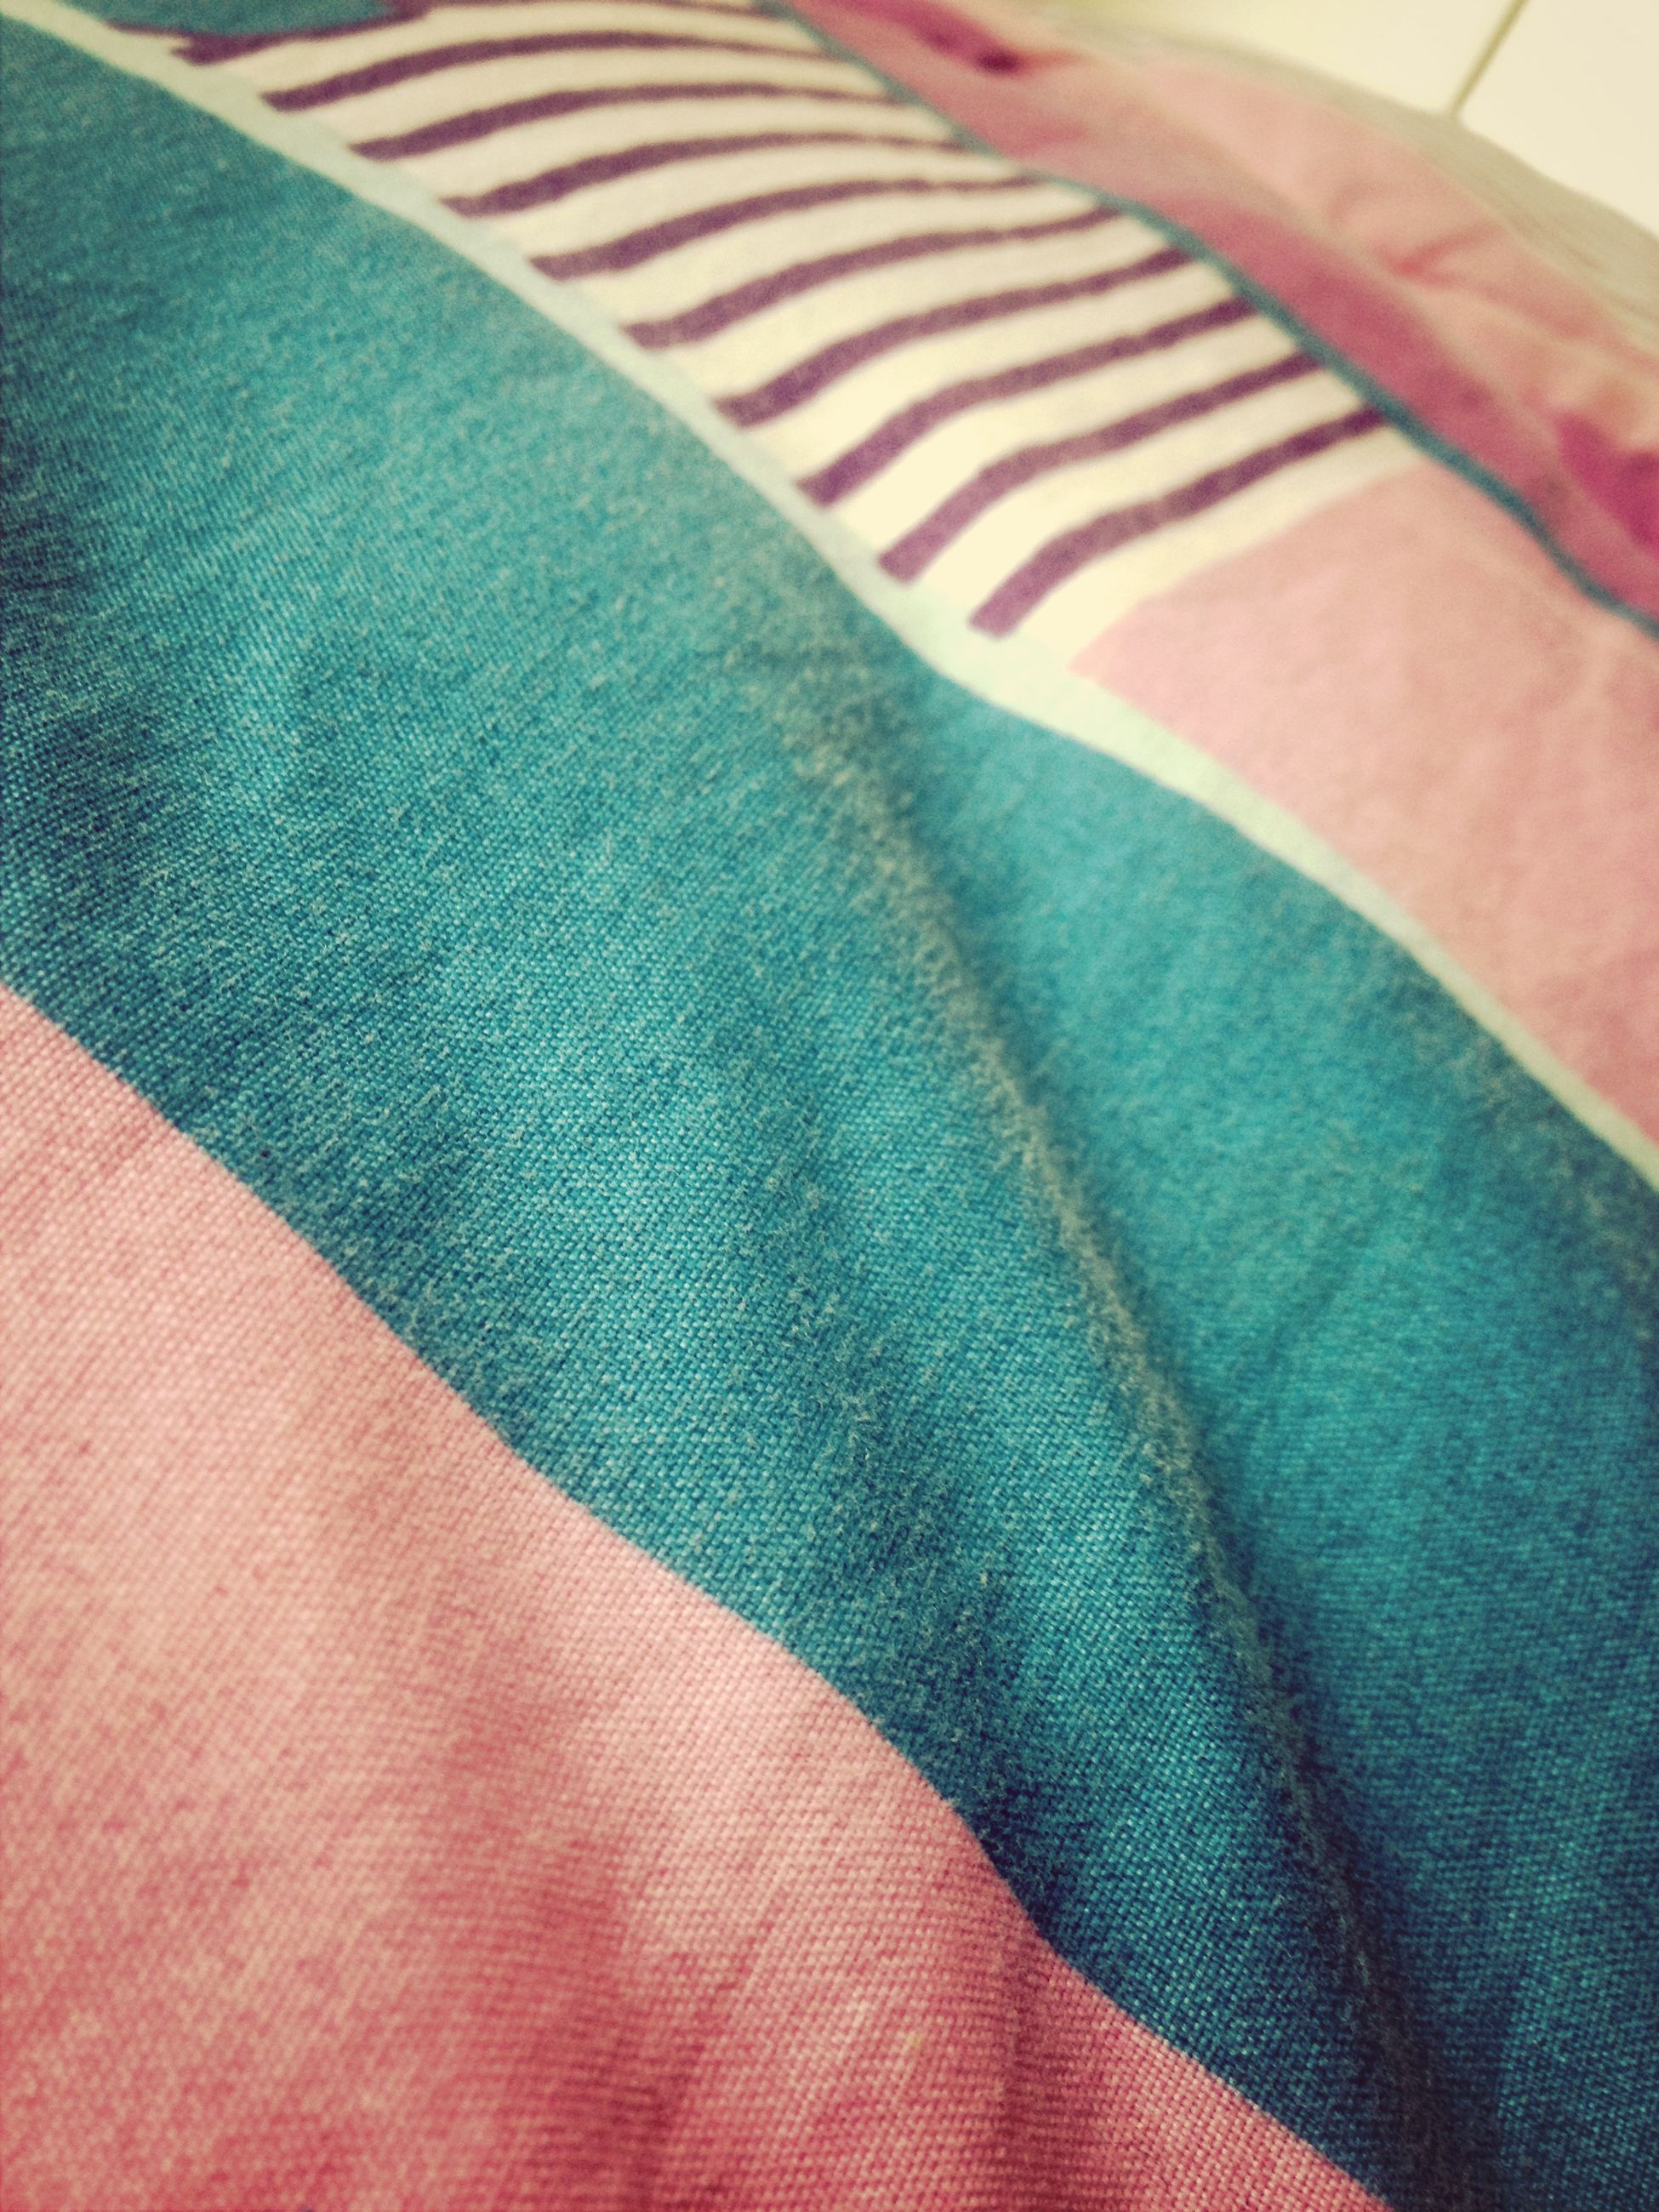 textile, fabric, indoors, close-up, pattern, full frame, multi colored, backgrounds, textured, material, still life, part of, design, detail, high angle view, no people, blue, striped, red, clothing